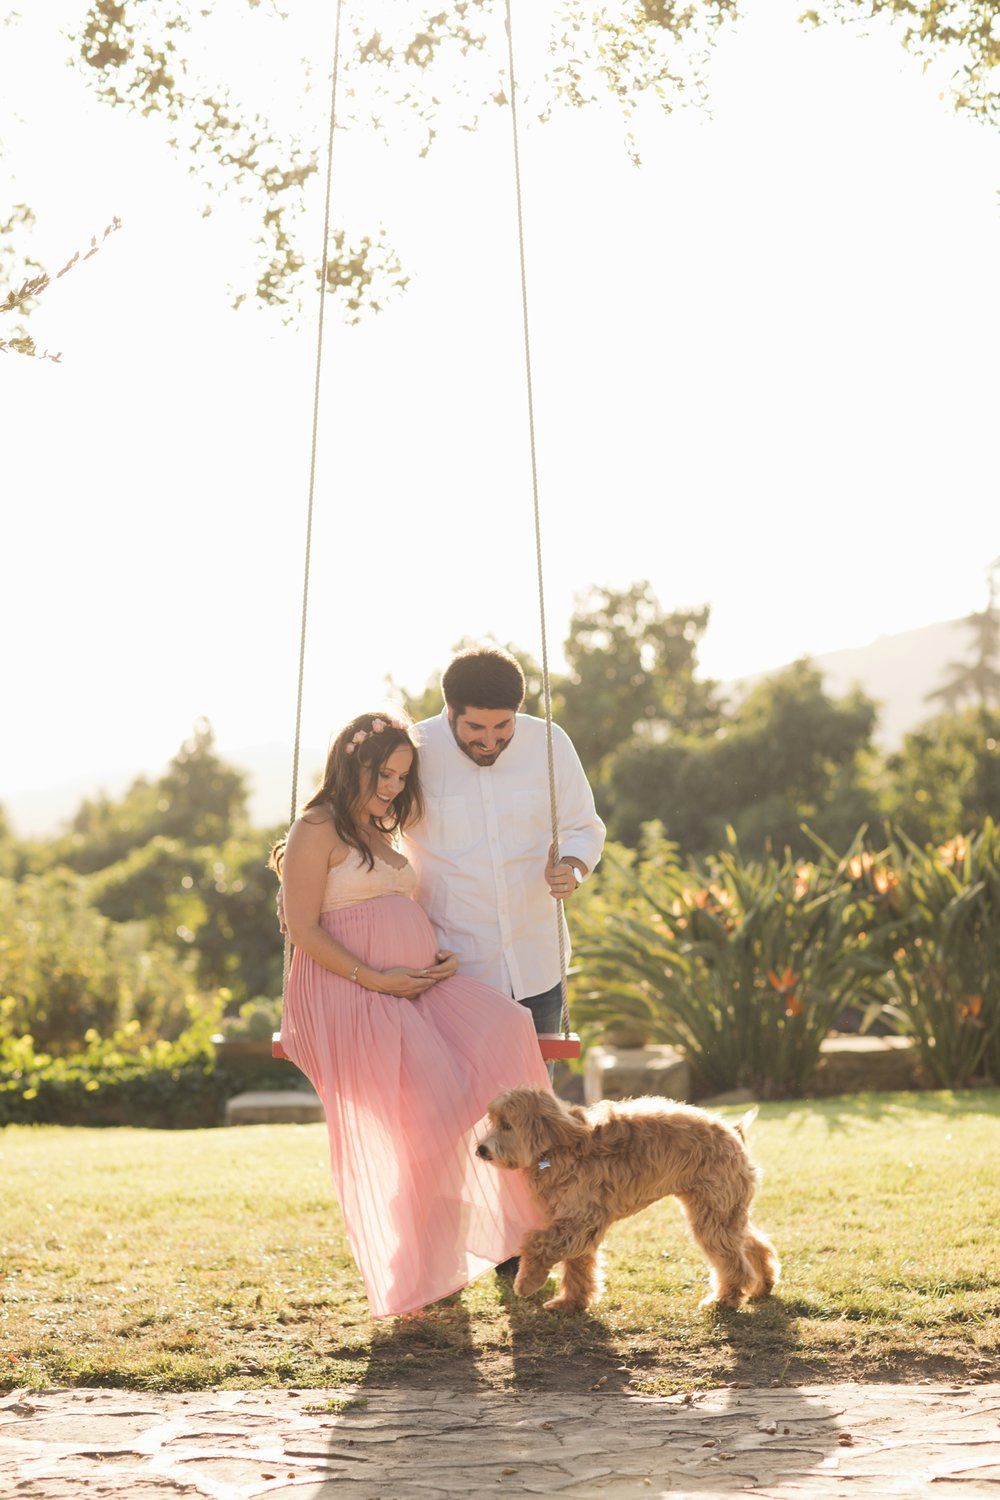 shewanders.photography.san_.diego_.maternity.coronado059.jpg.san_.diego_.maternity.coronado059.jpg